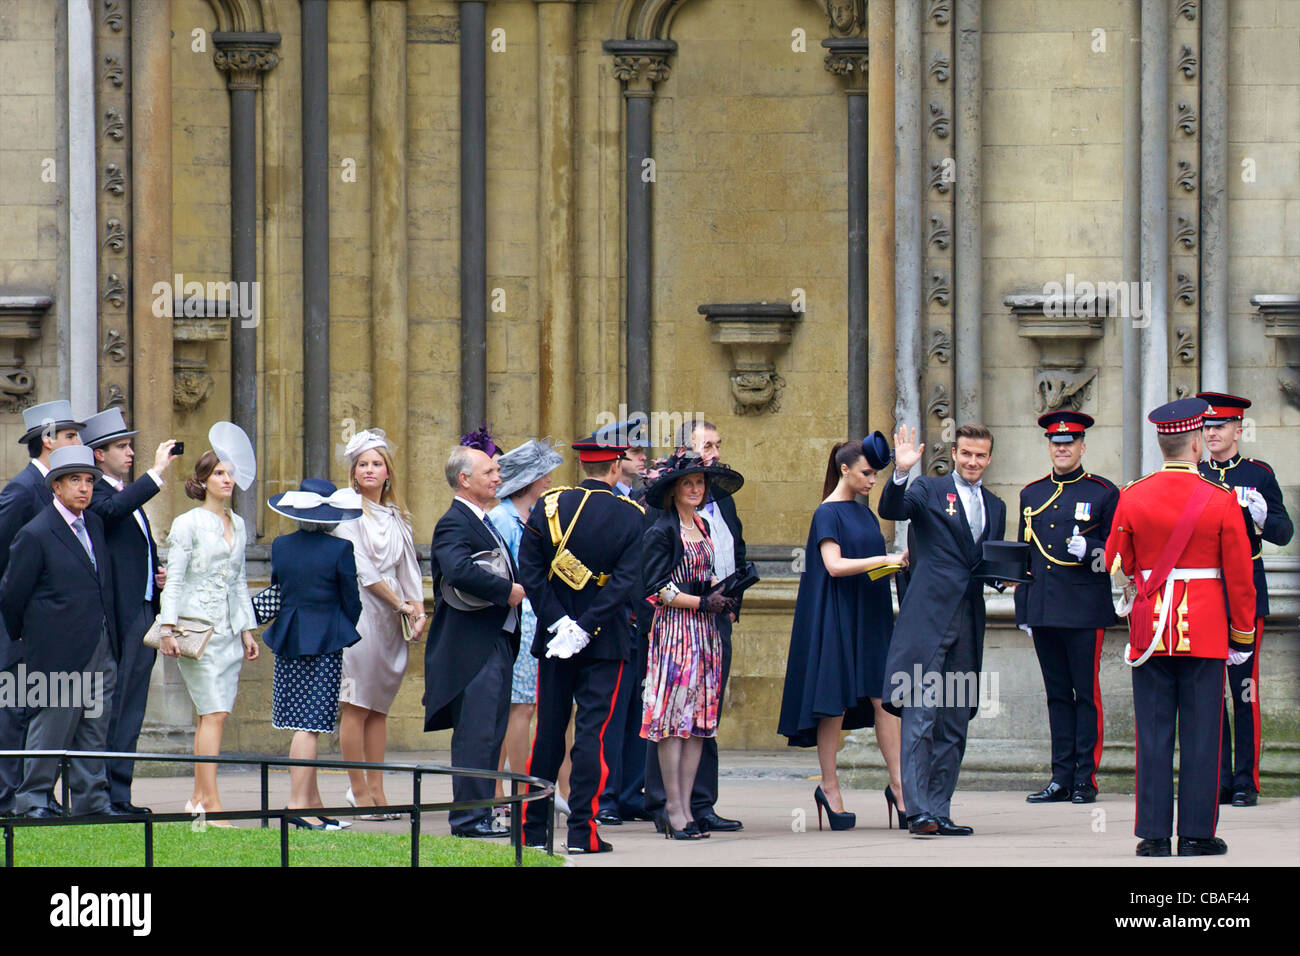 David and Victoria Beckham arriving outside Westminster Abbey for the marriage of Prince William to Kate Middleton - Stock Image